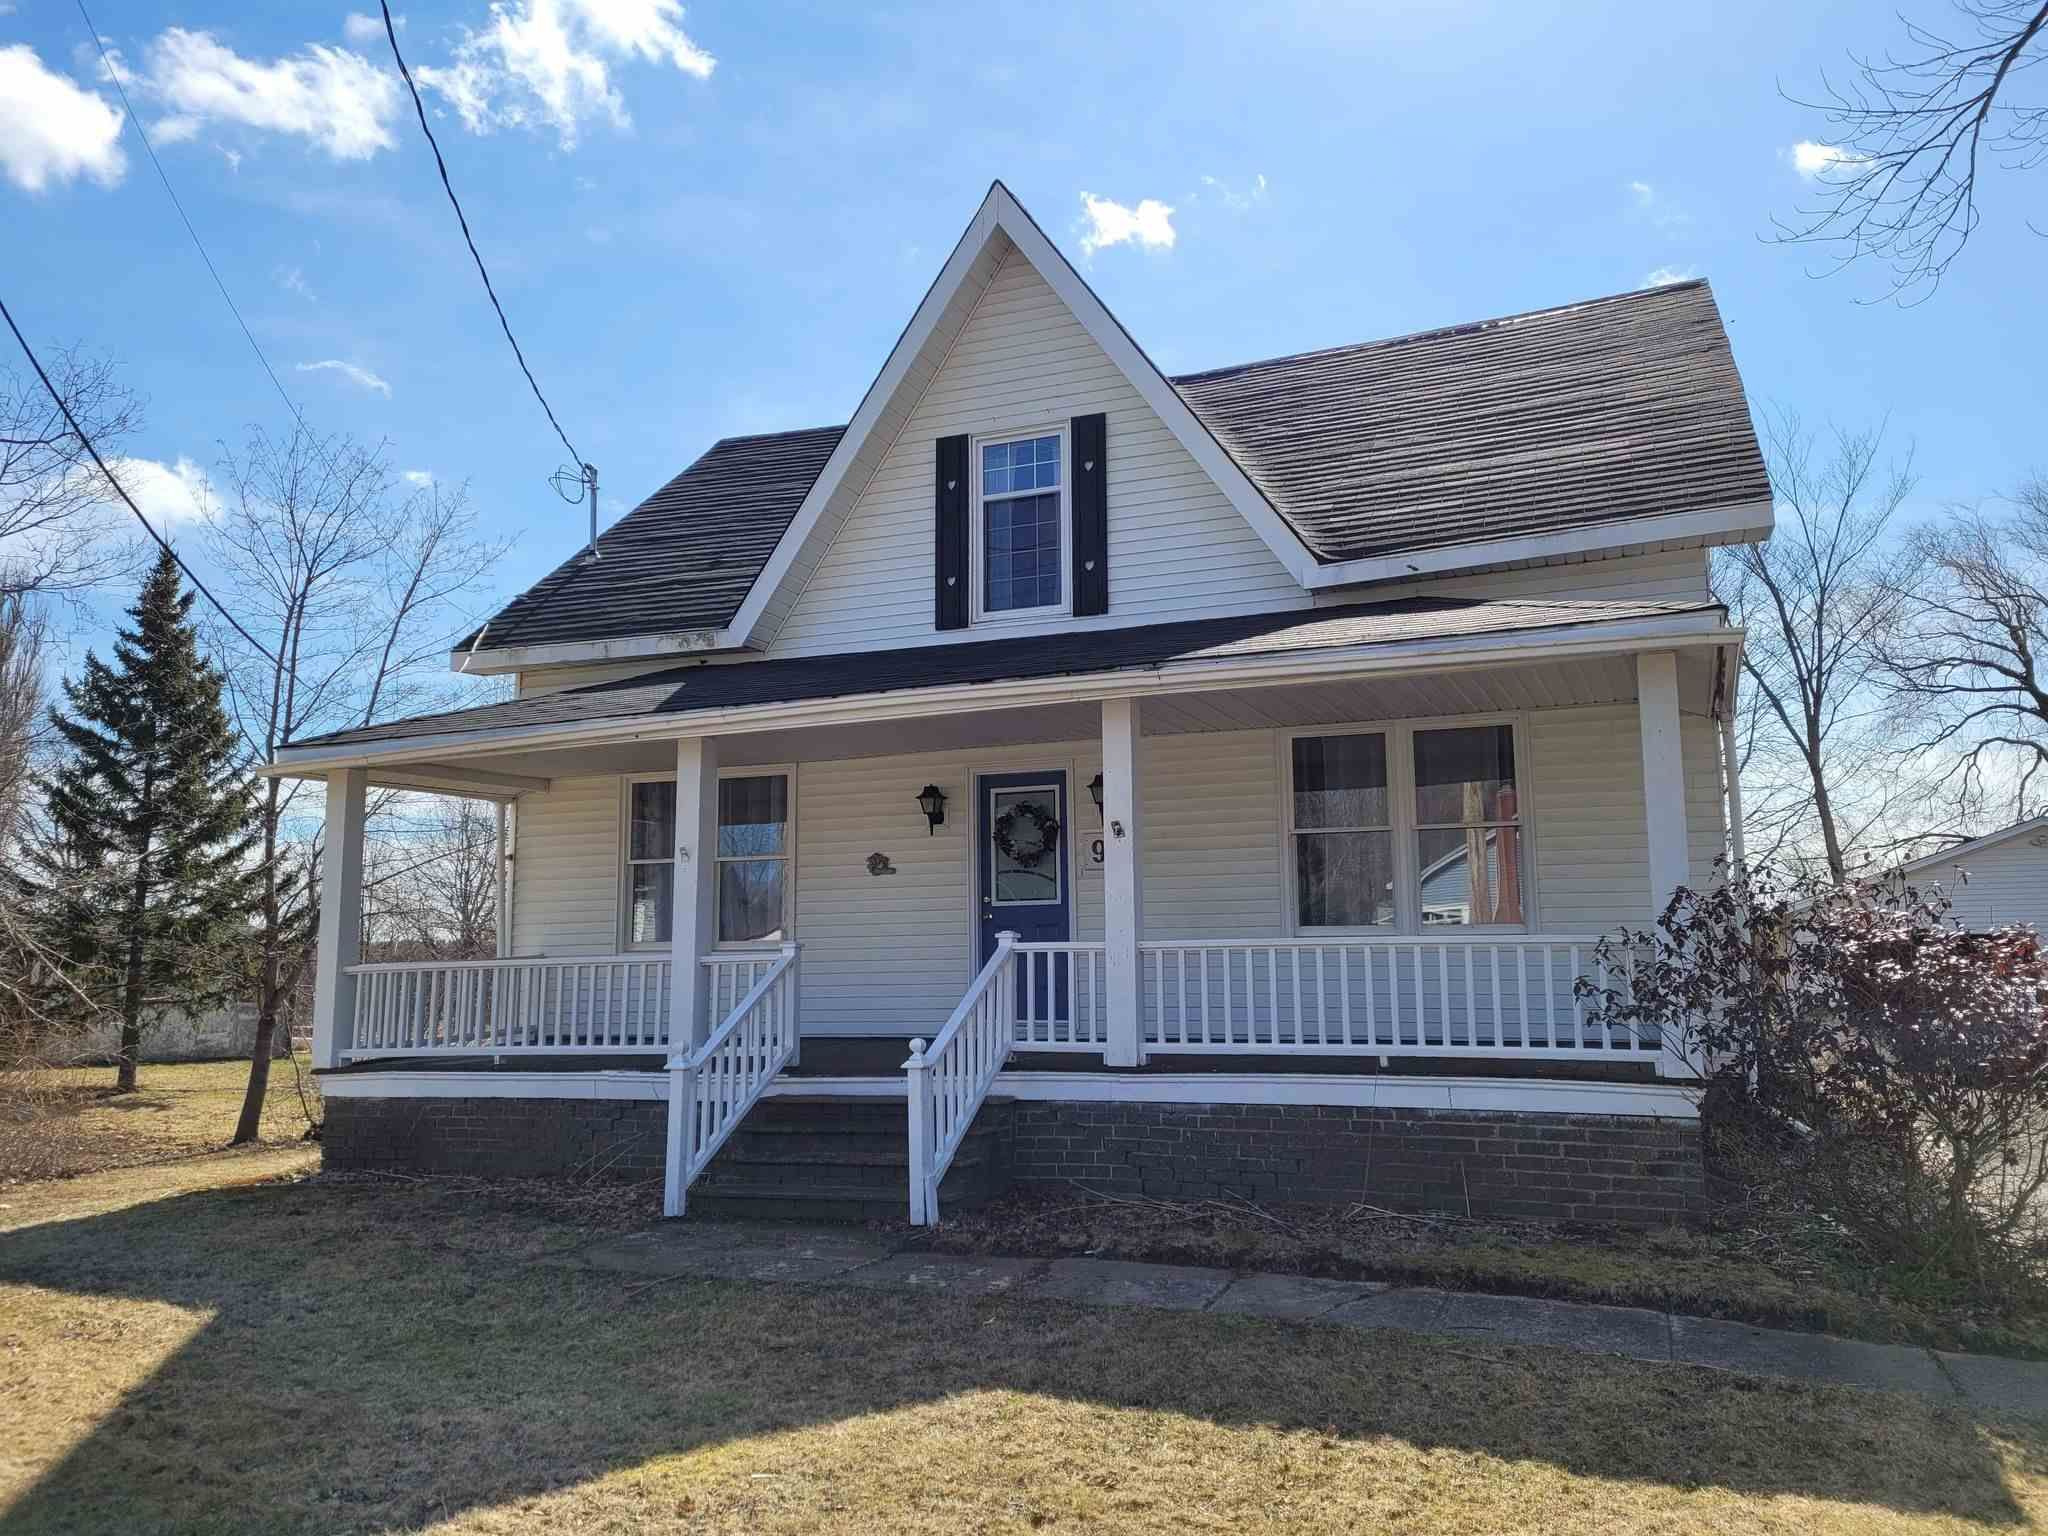 Main Photo: 94 Main Street in Middleton: 400-Annapolis County Residential for sale (Annapolis Valley)  : MLS®# 202106818